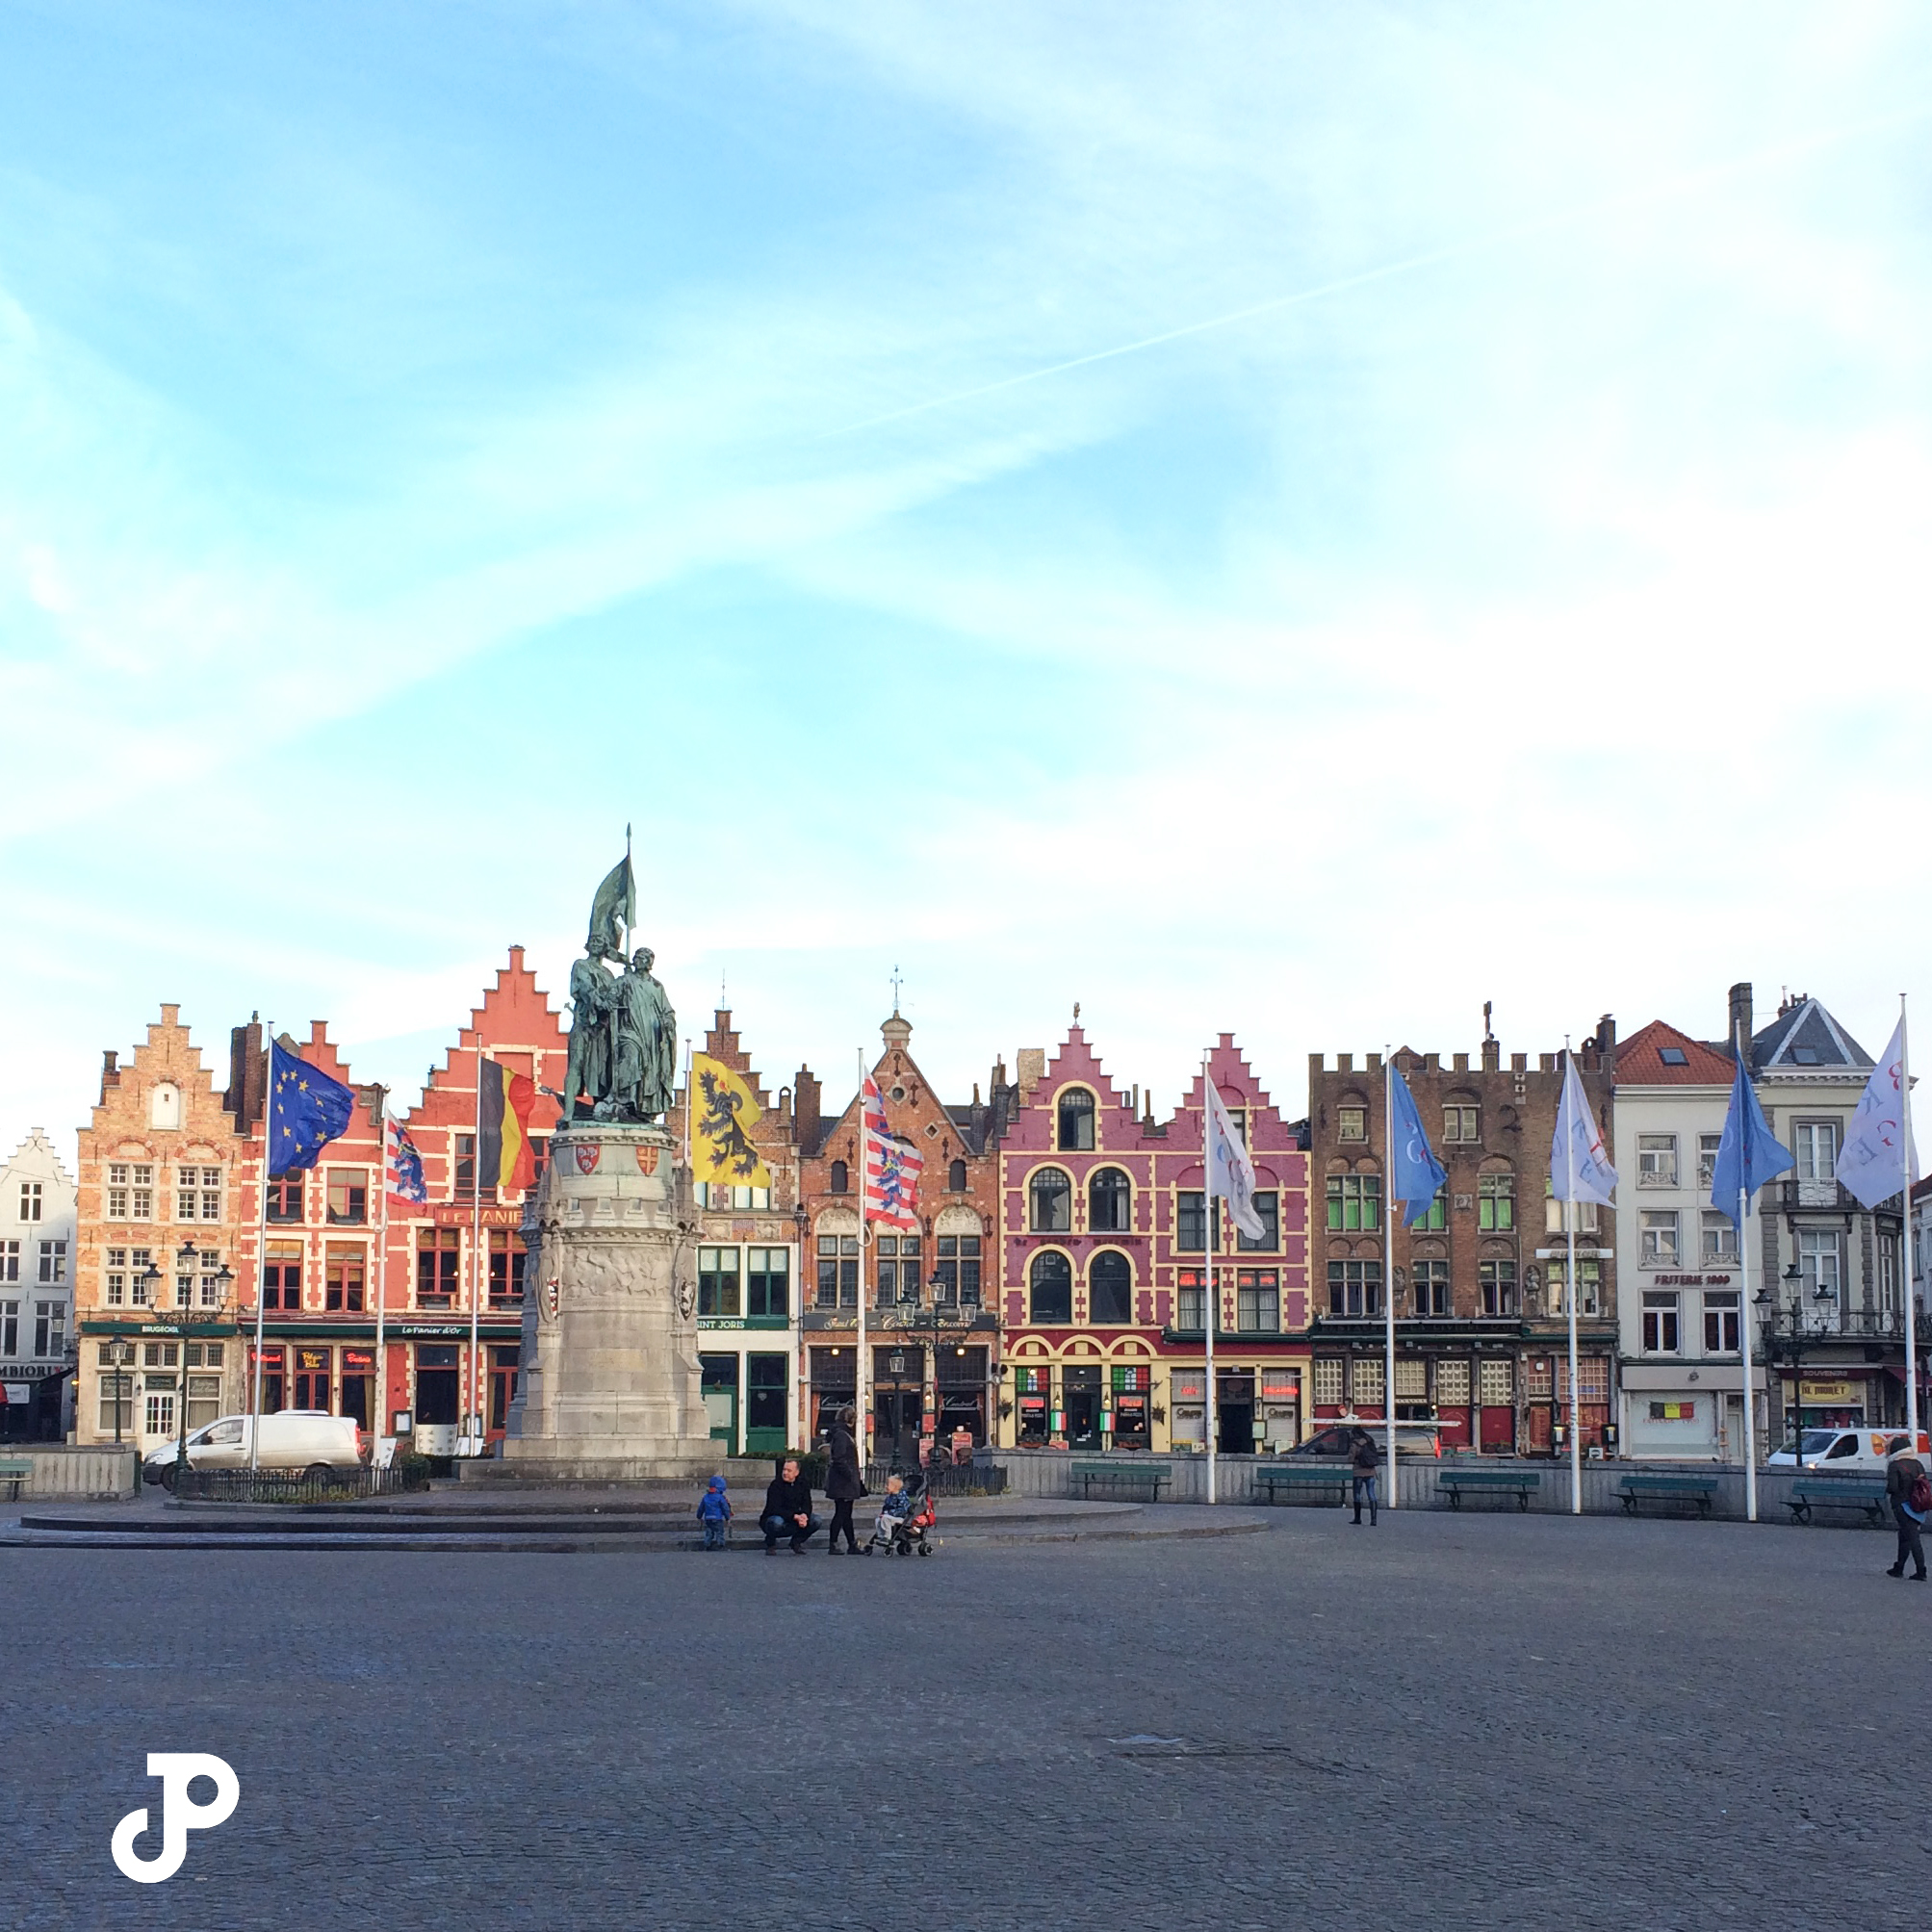 Markt square with colorful narrow buildings in the background